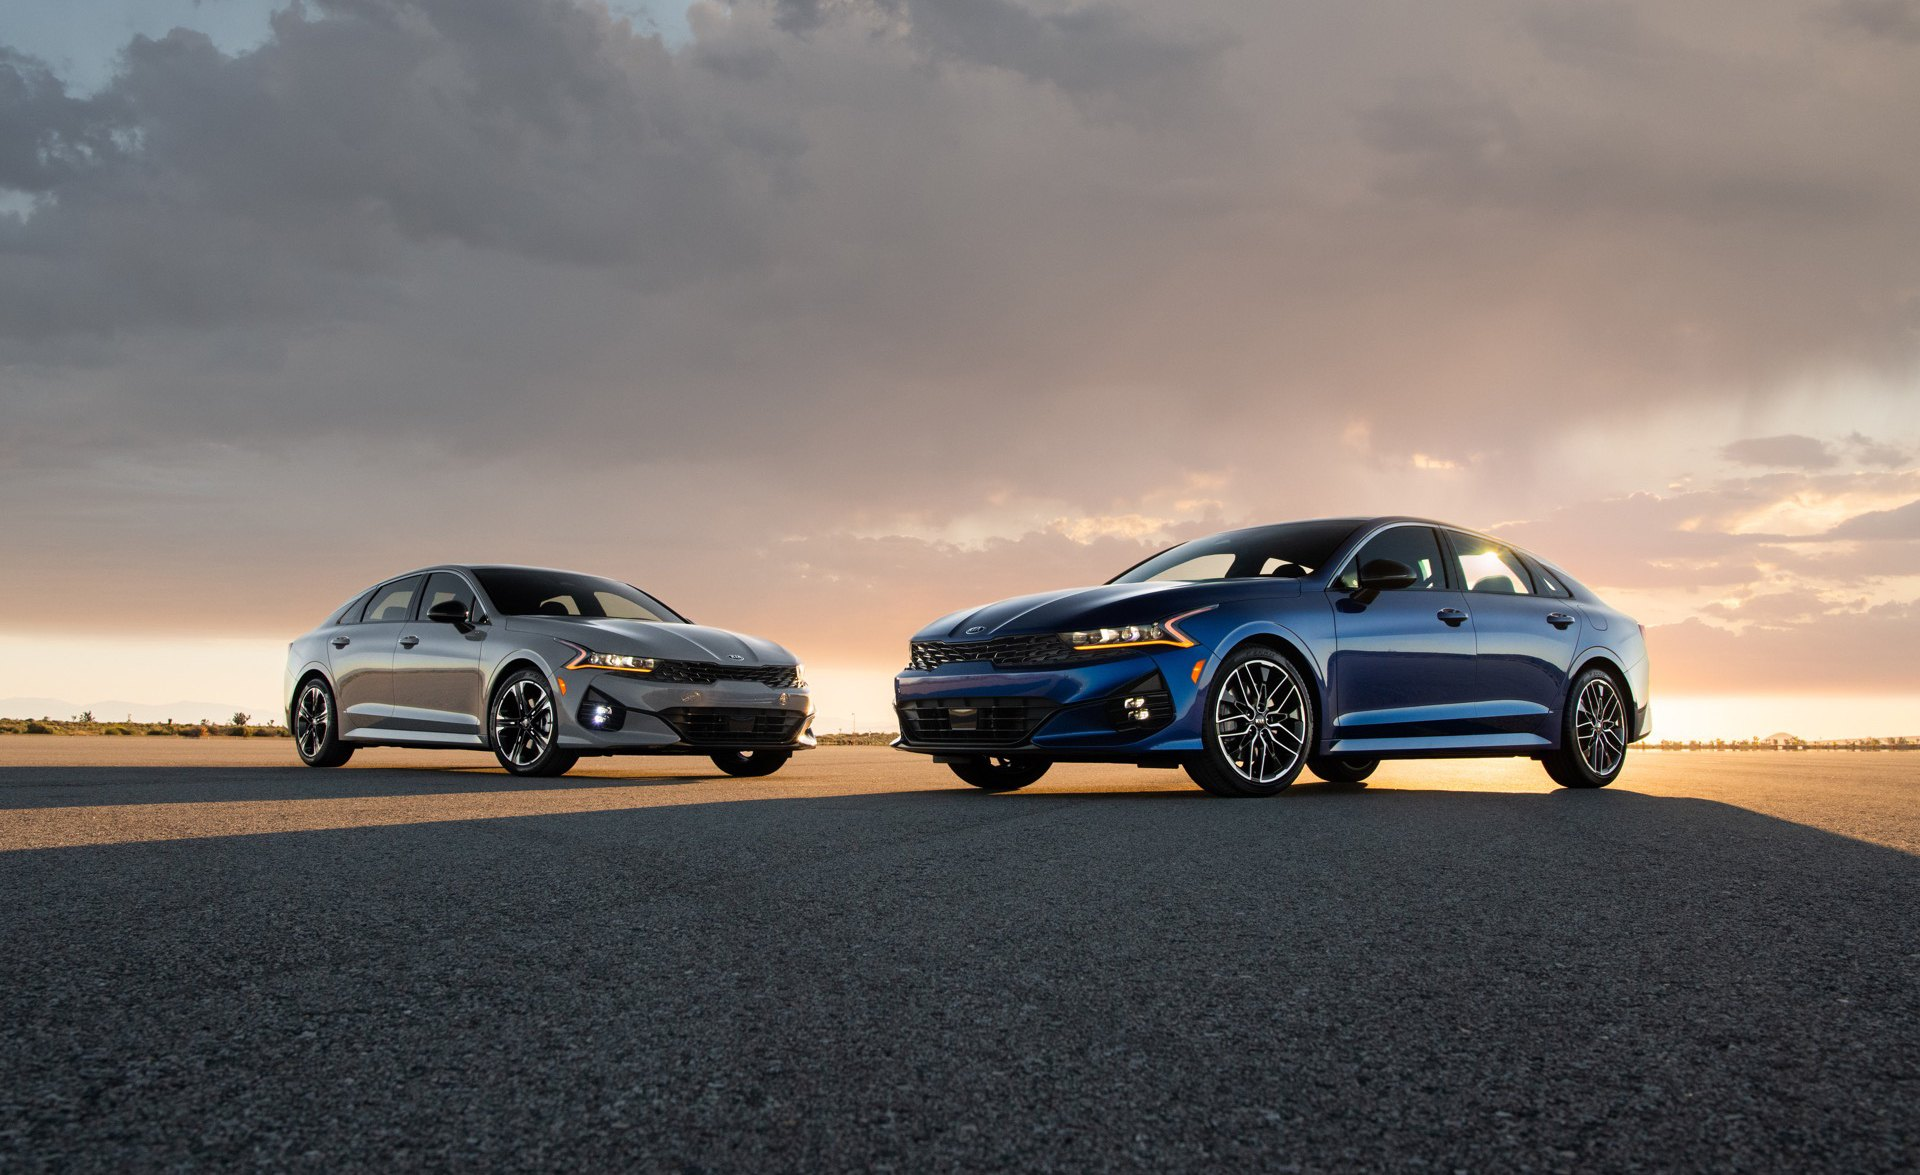 2021 Kia K5 GT-Line (grey) and GT (blue)